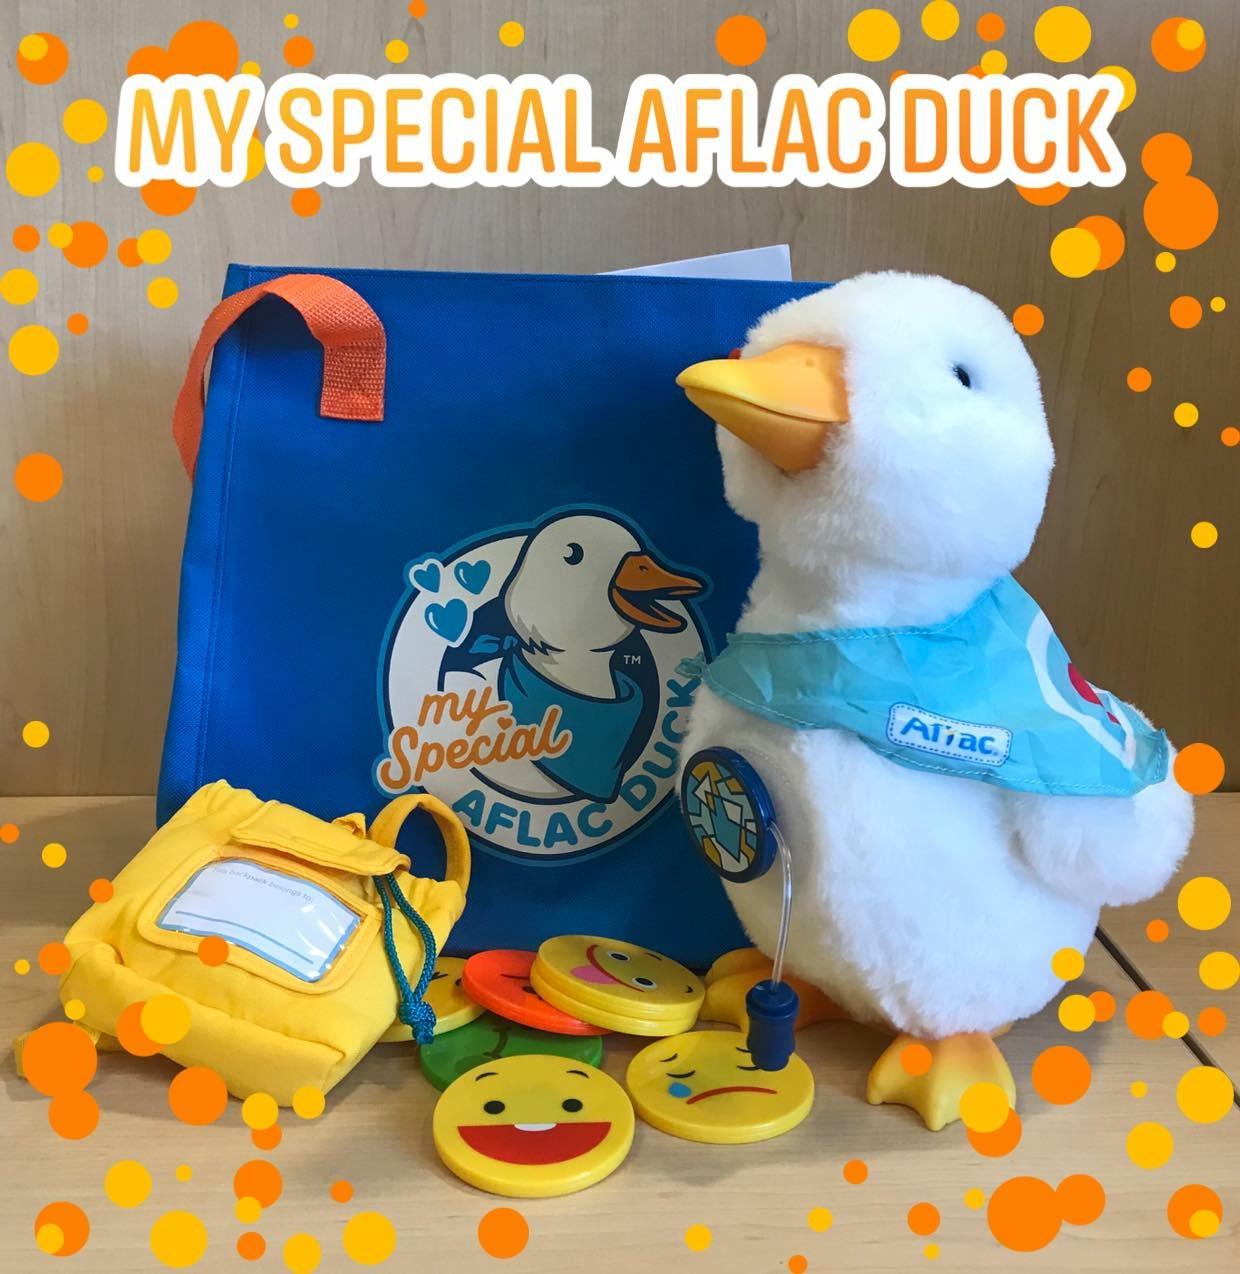 Special Ducks for Special Kids